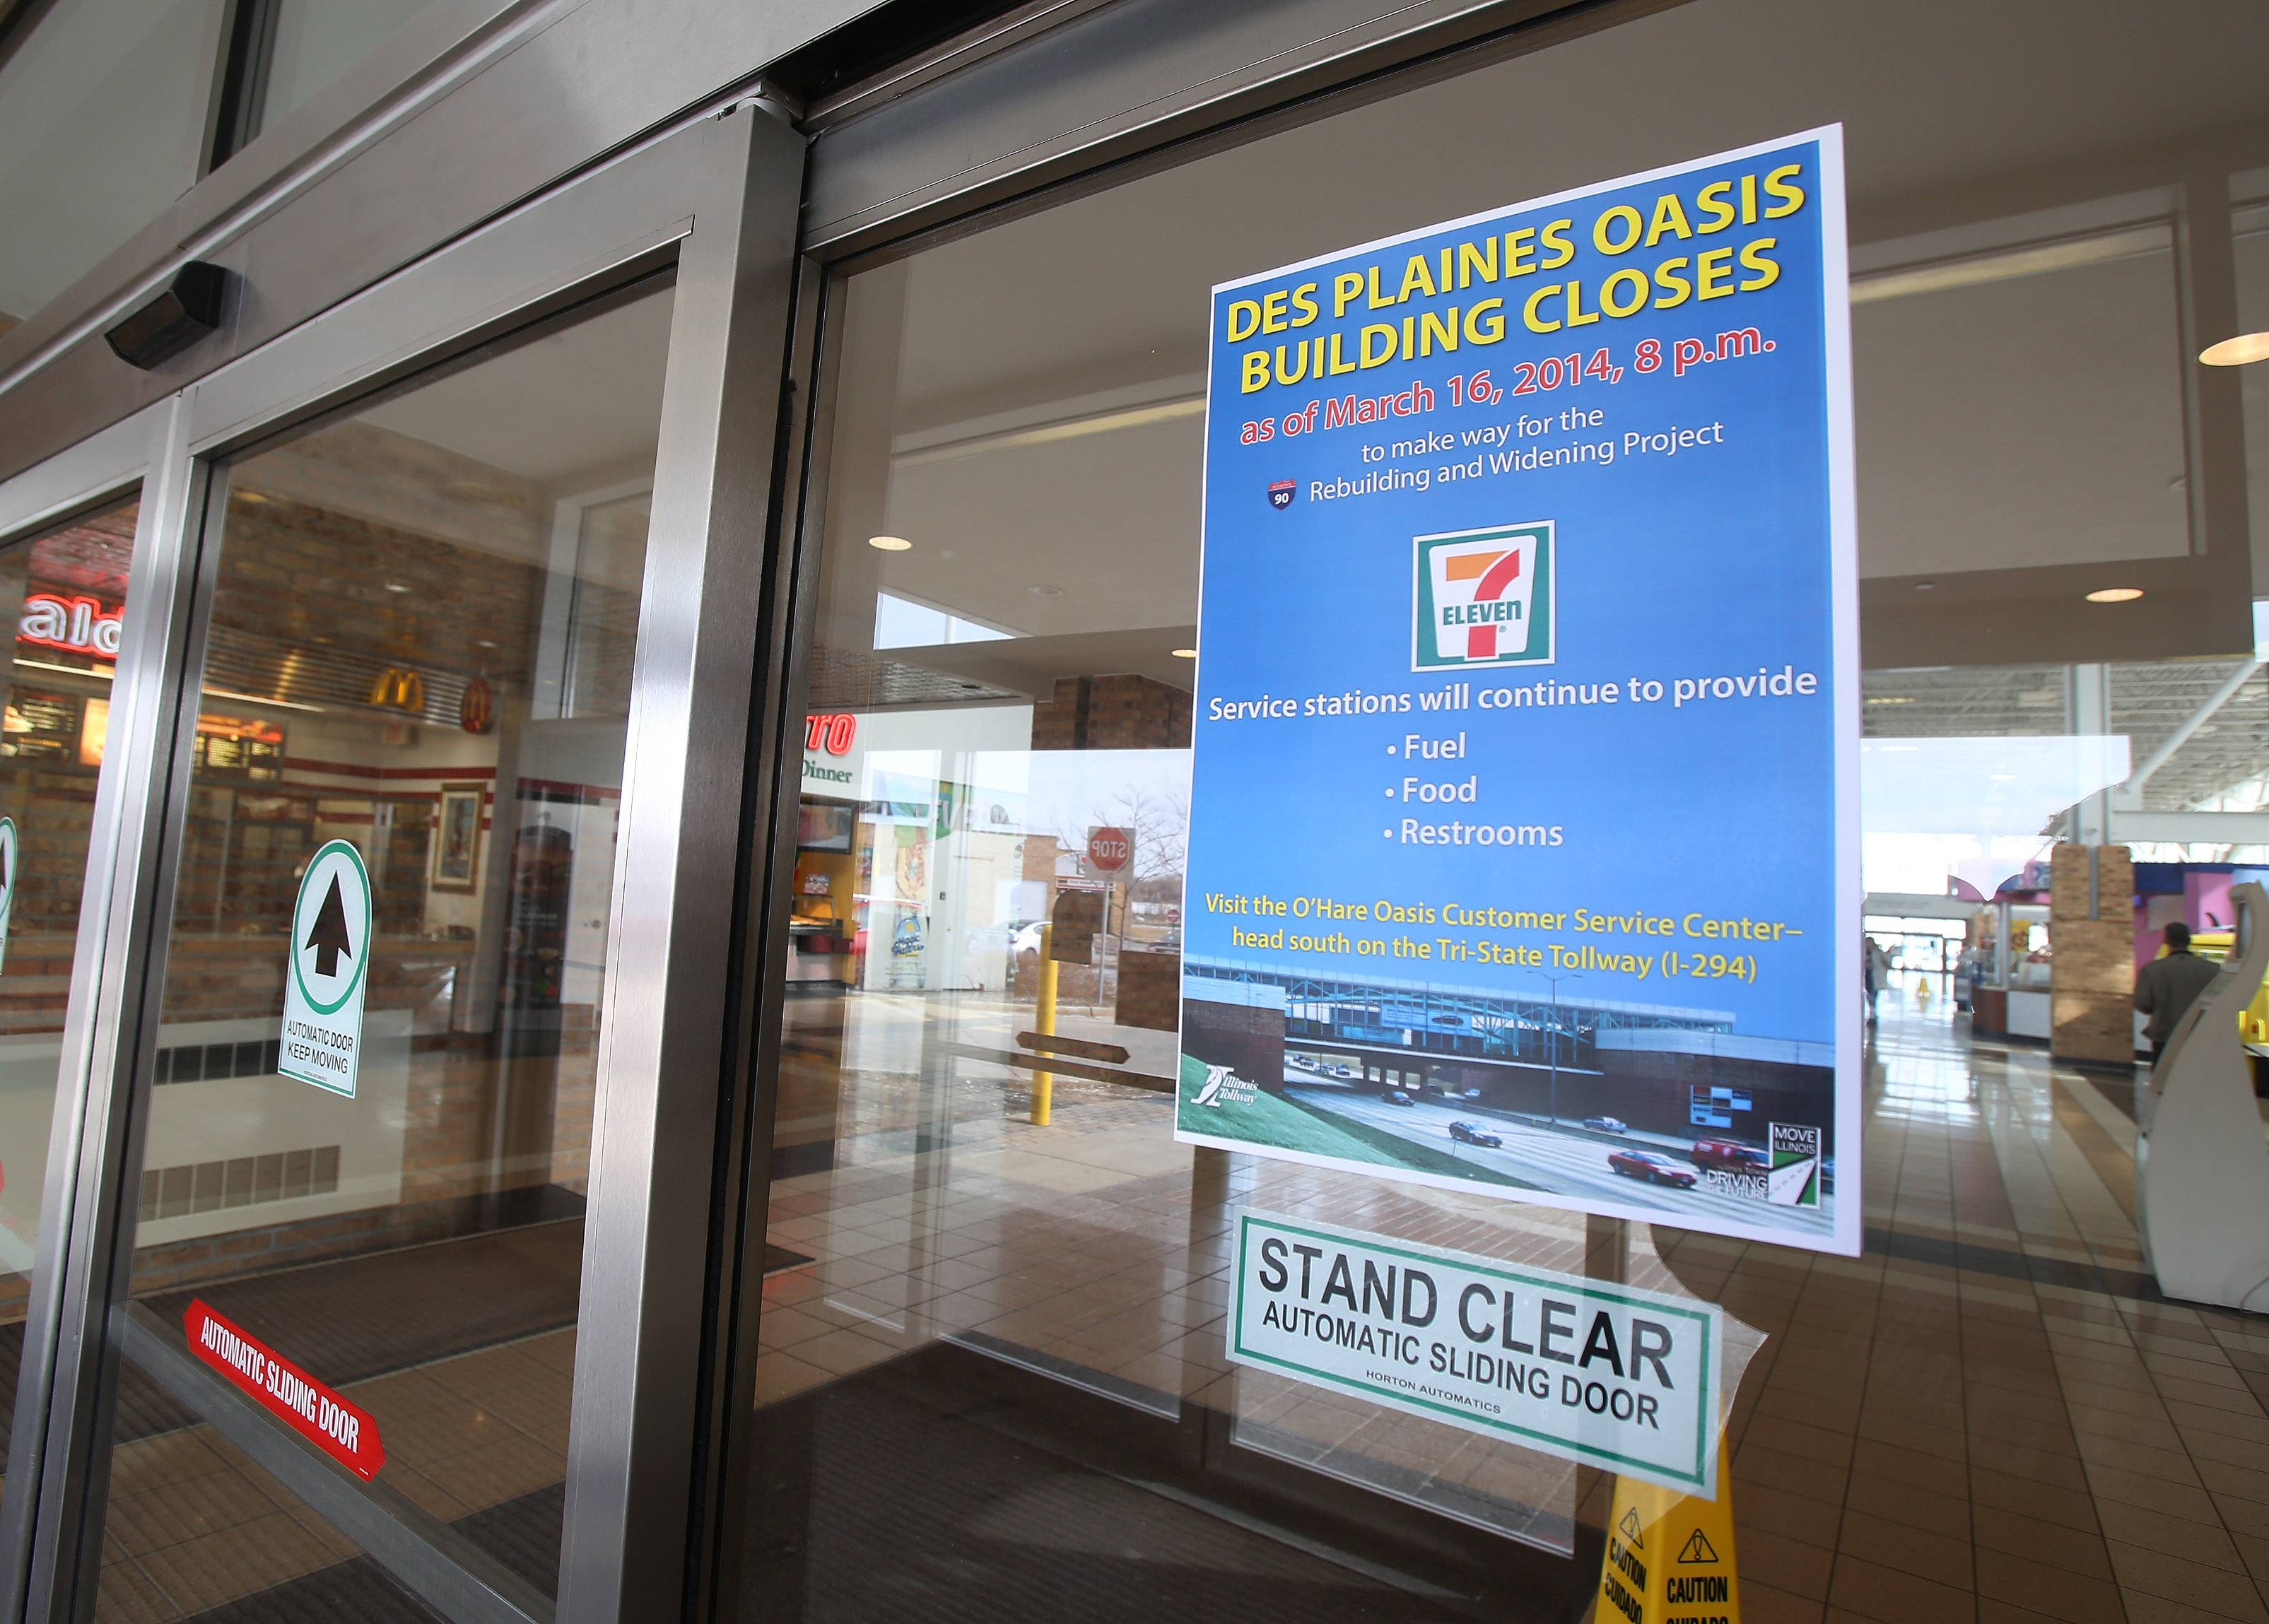 A sign on the front door tells the story of the Des Plaines Oasis' closing Sunday.